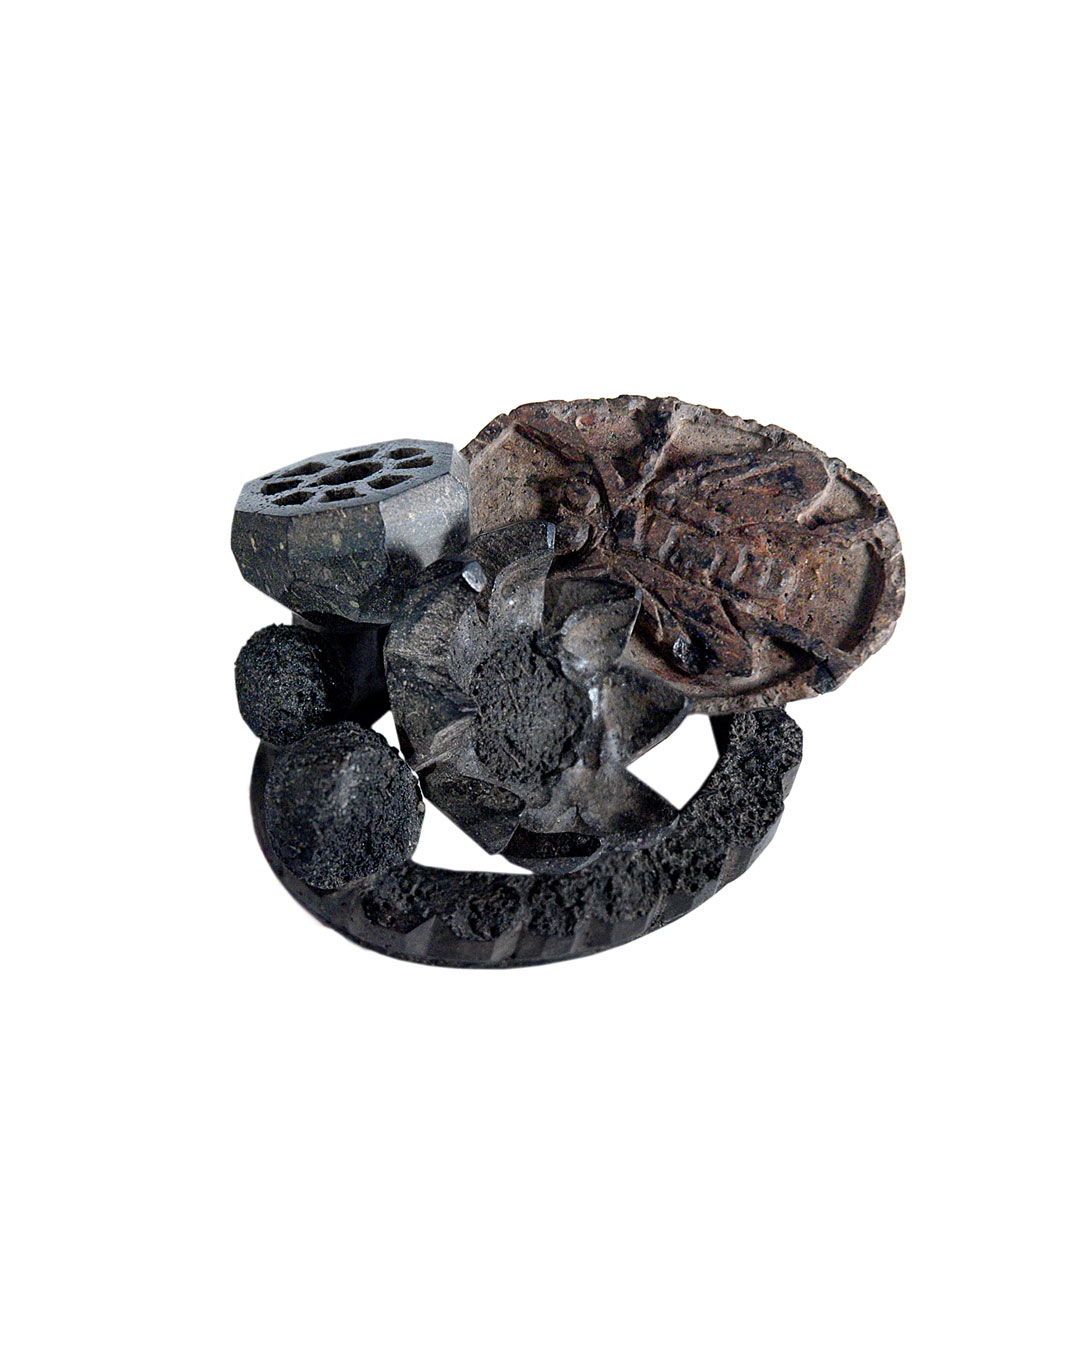 Carmen Hauser, Shadow World 1, 2012, brooch; soil, rose leaves, synthetic resin, oxidised silver, 82 x 60 x 56 mm, €1670